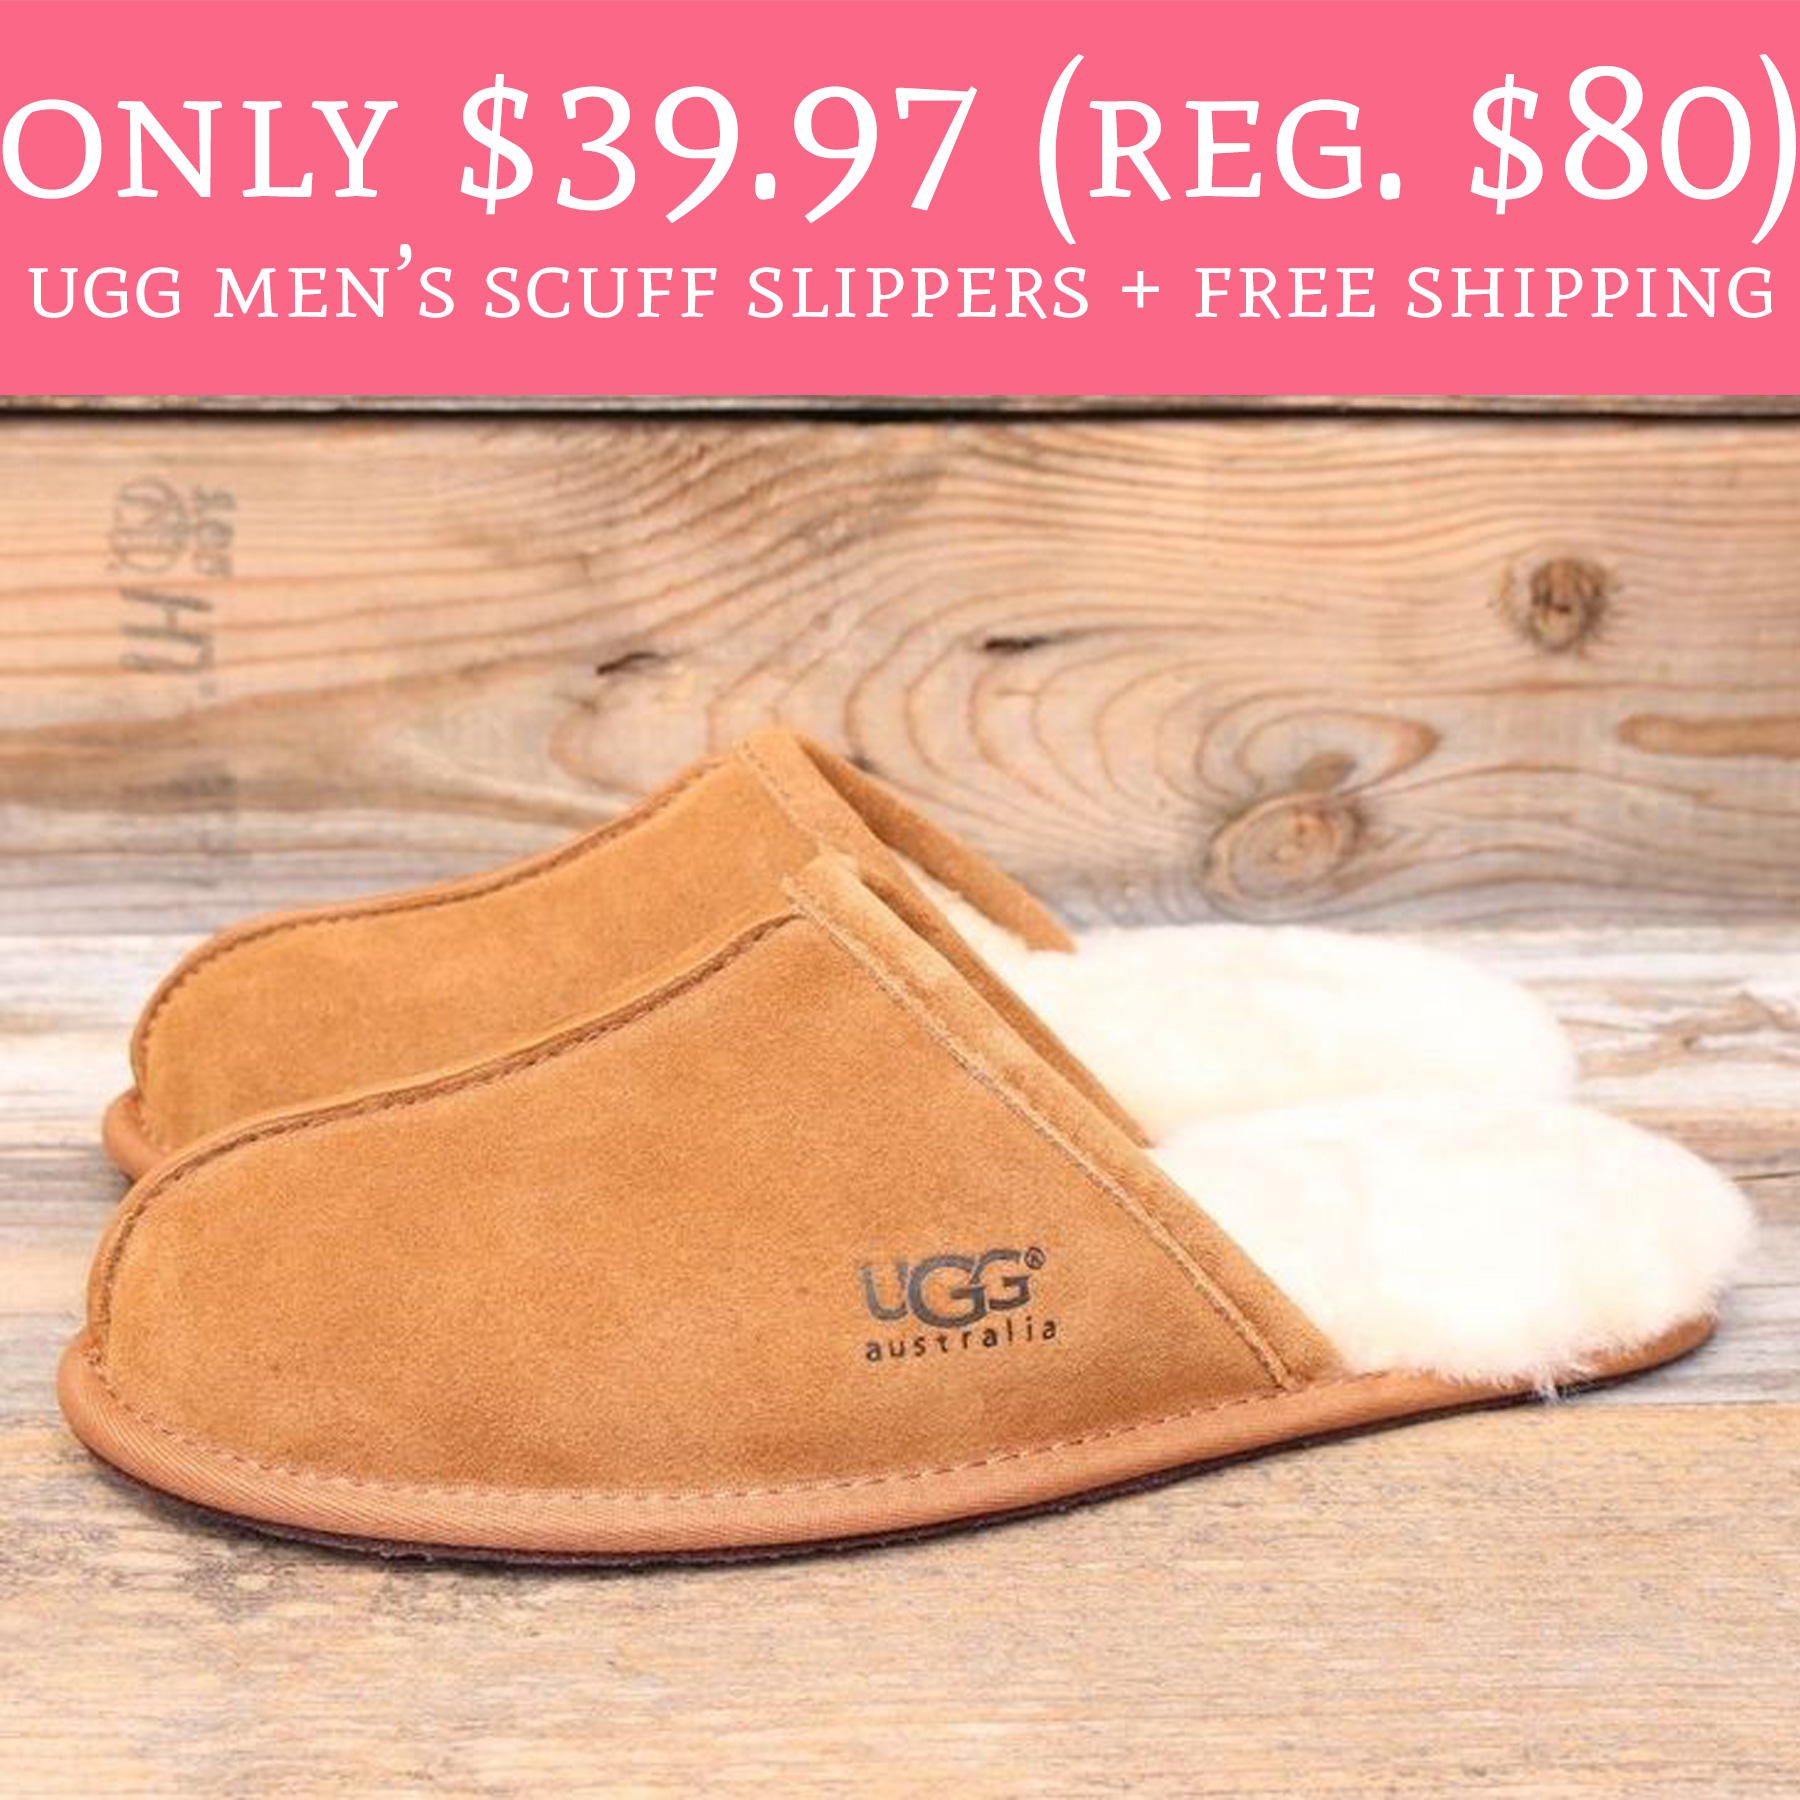 HOT Deal on Ugg slippers!!